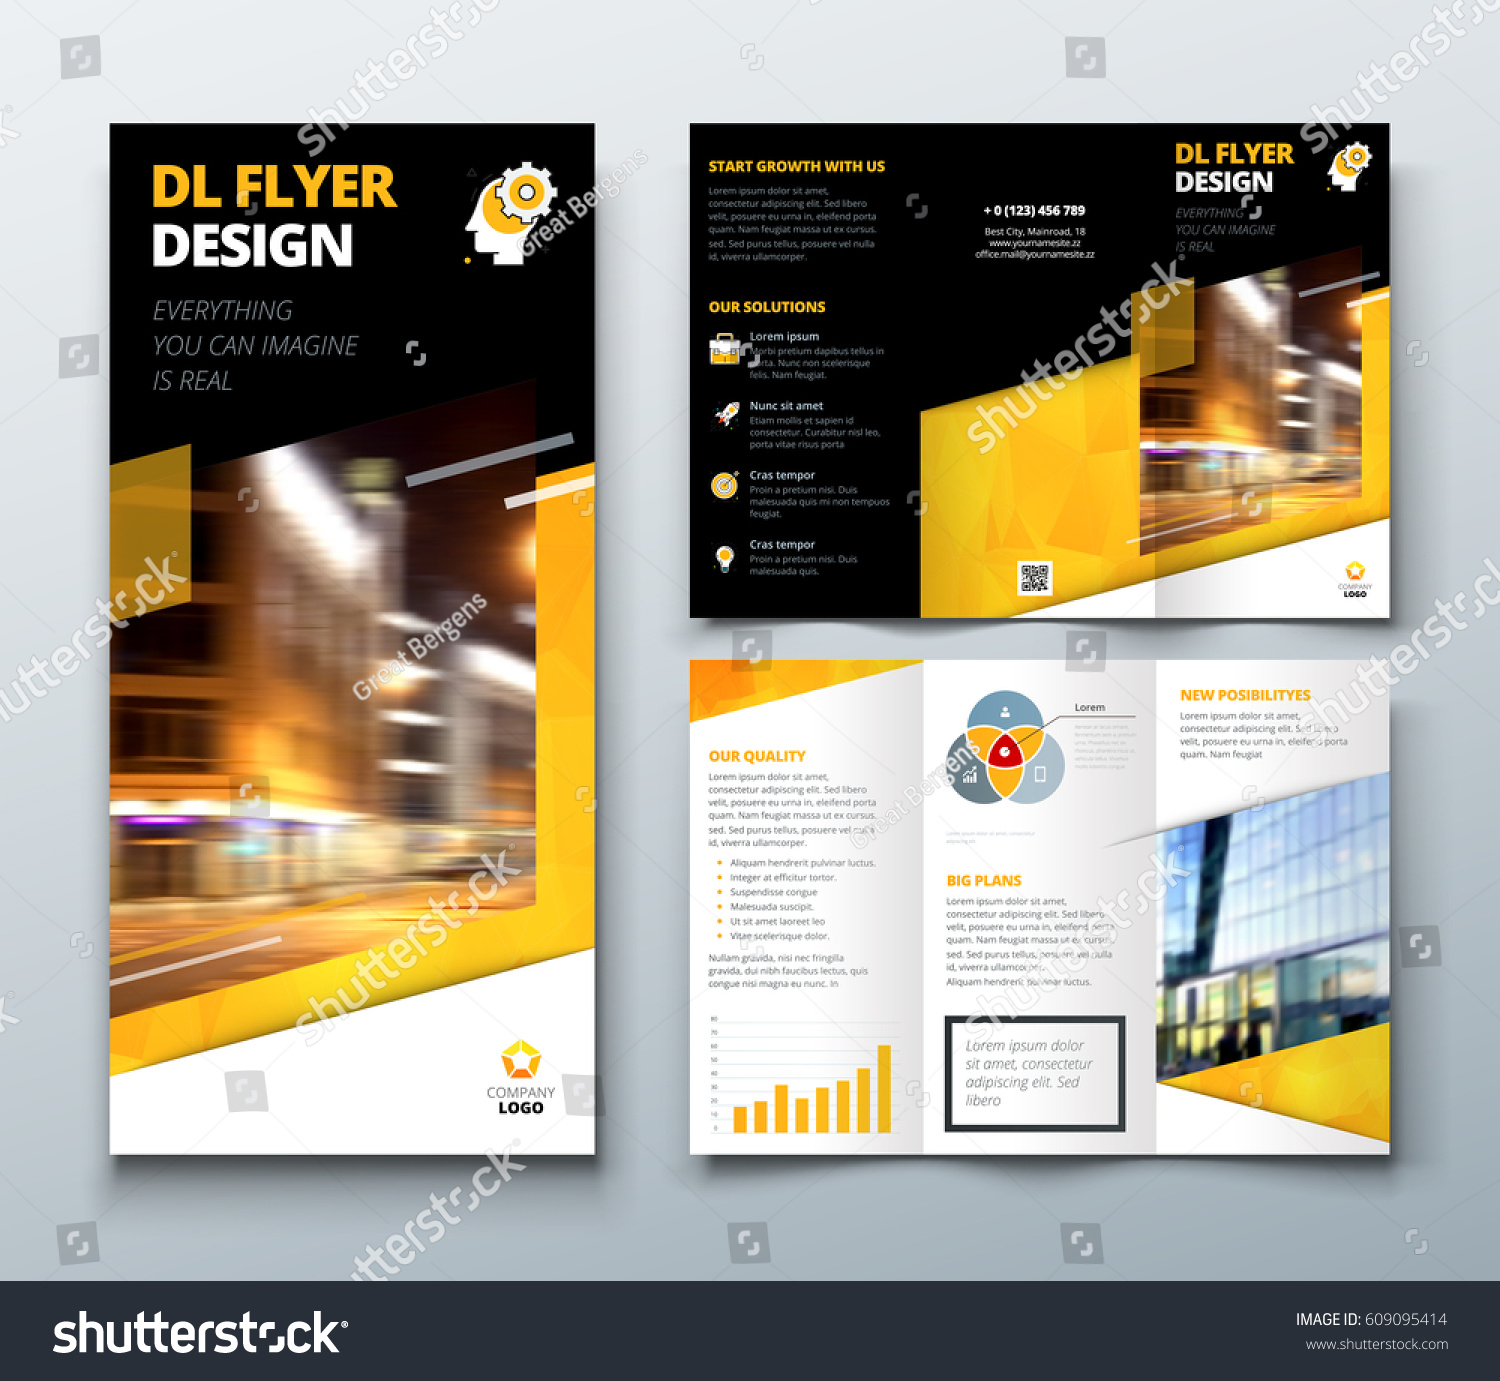 Tri fold brochure design black yellow stock vector for Dl brochure template